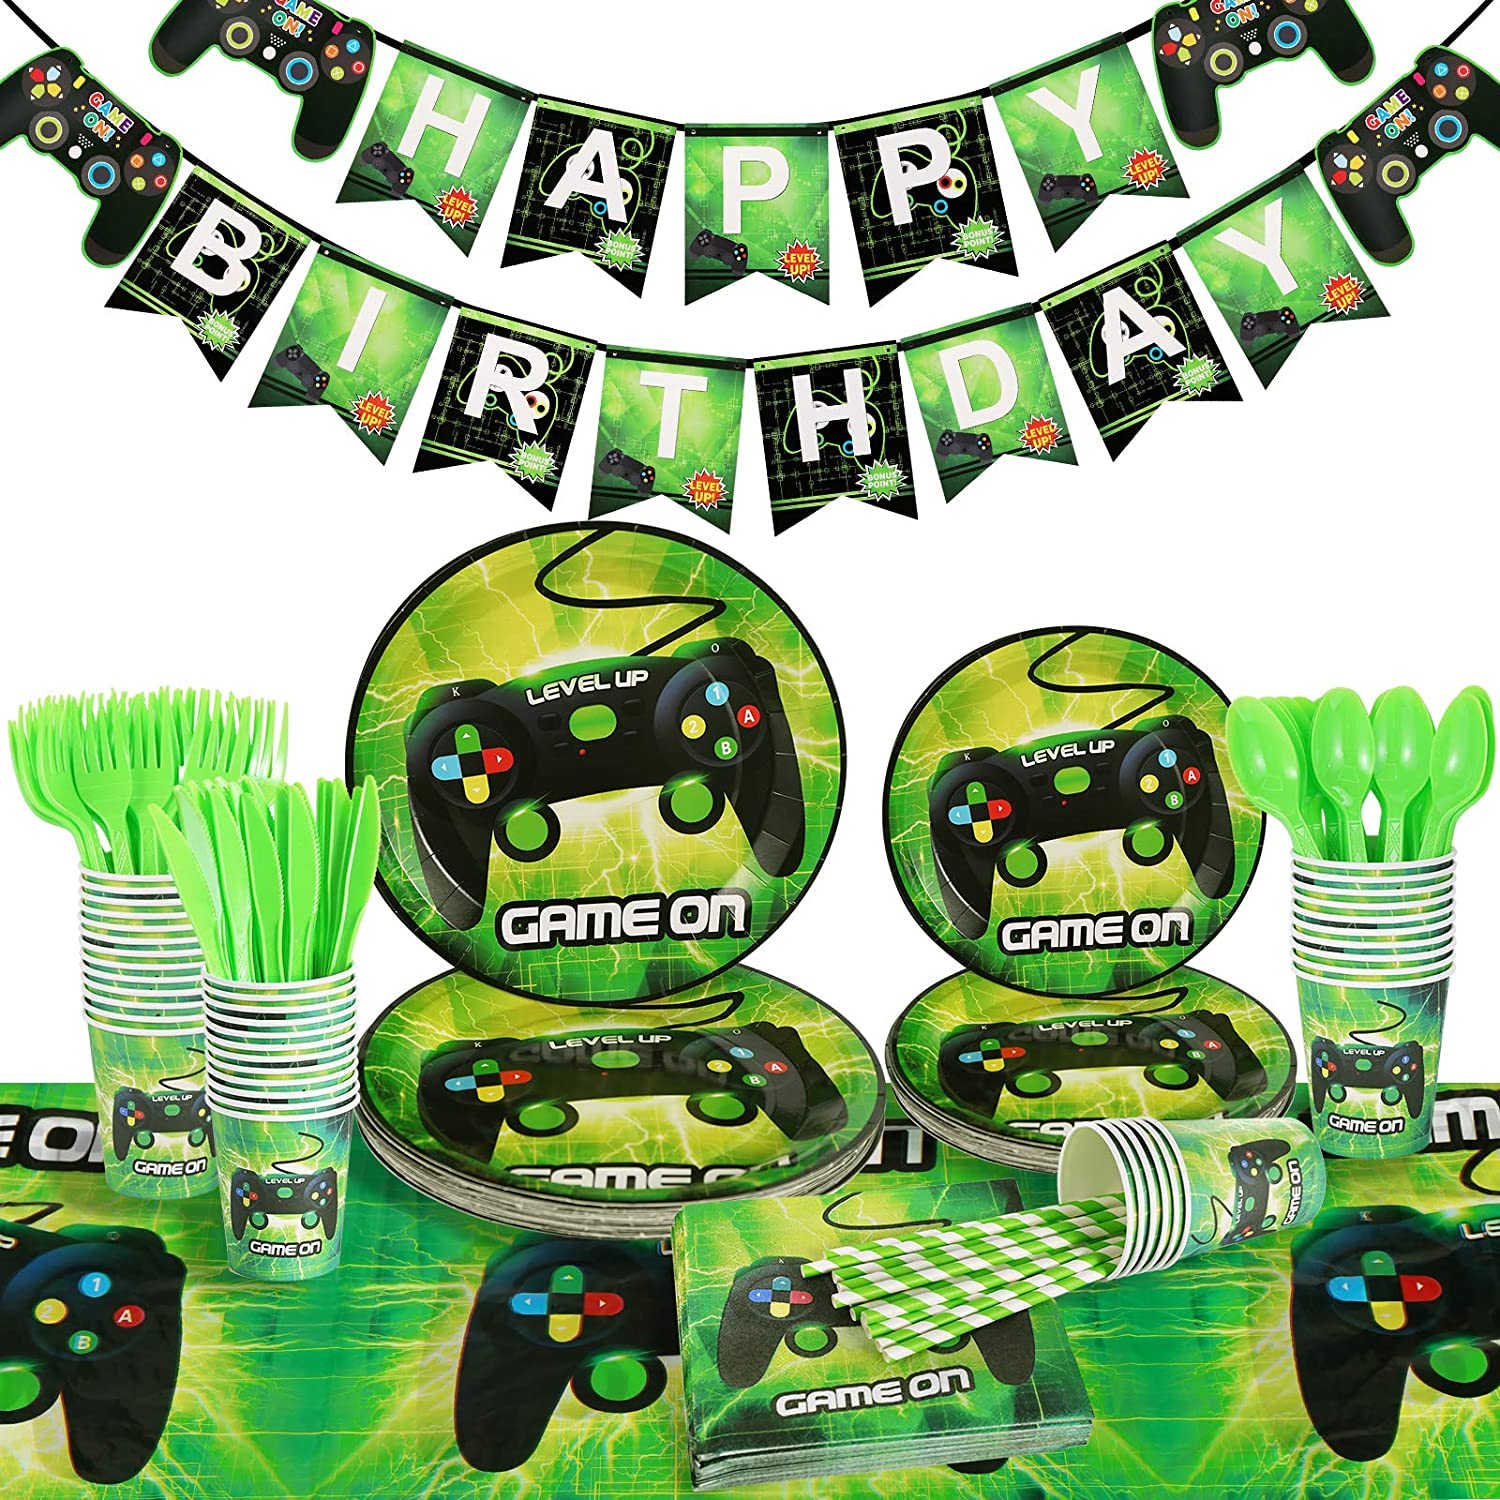 Homyplaza Video Game Party Supplies, 203Pcs Birthday Plates and Napkin Set for Boys Gamer, Includes Party Plates, Gamer Table Cloth, Happy Birthday Banner, Flatware, Cups, Straws, Napkins, Serves 25